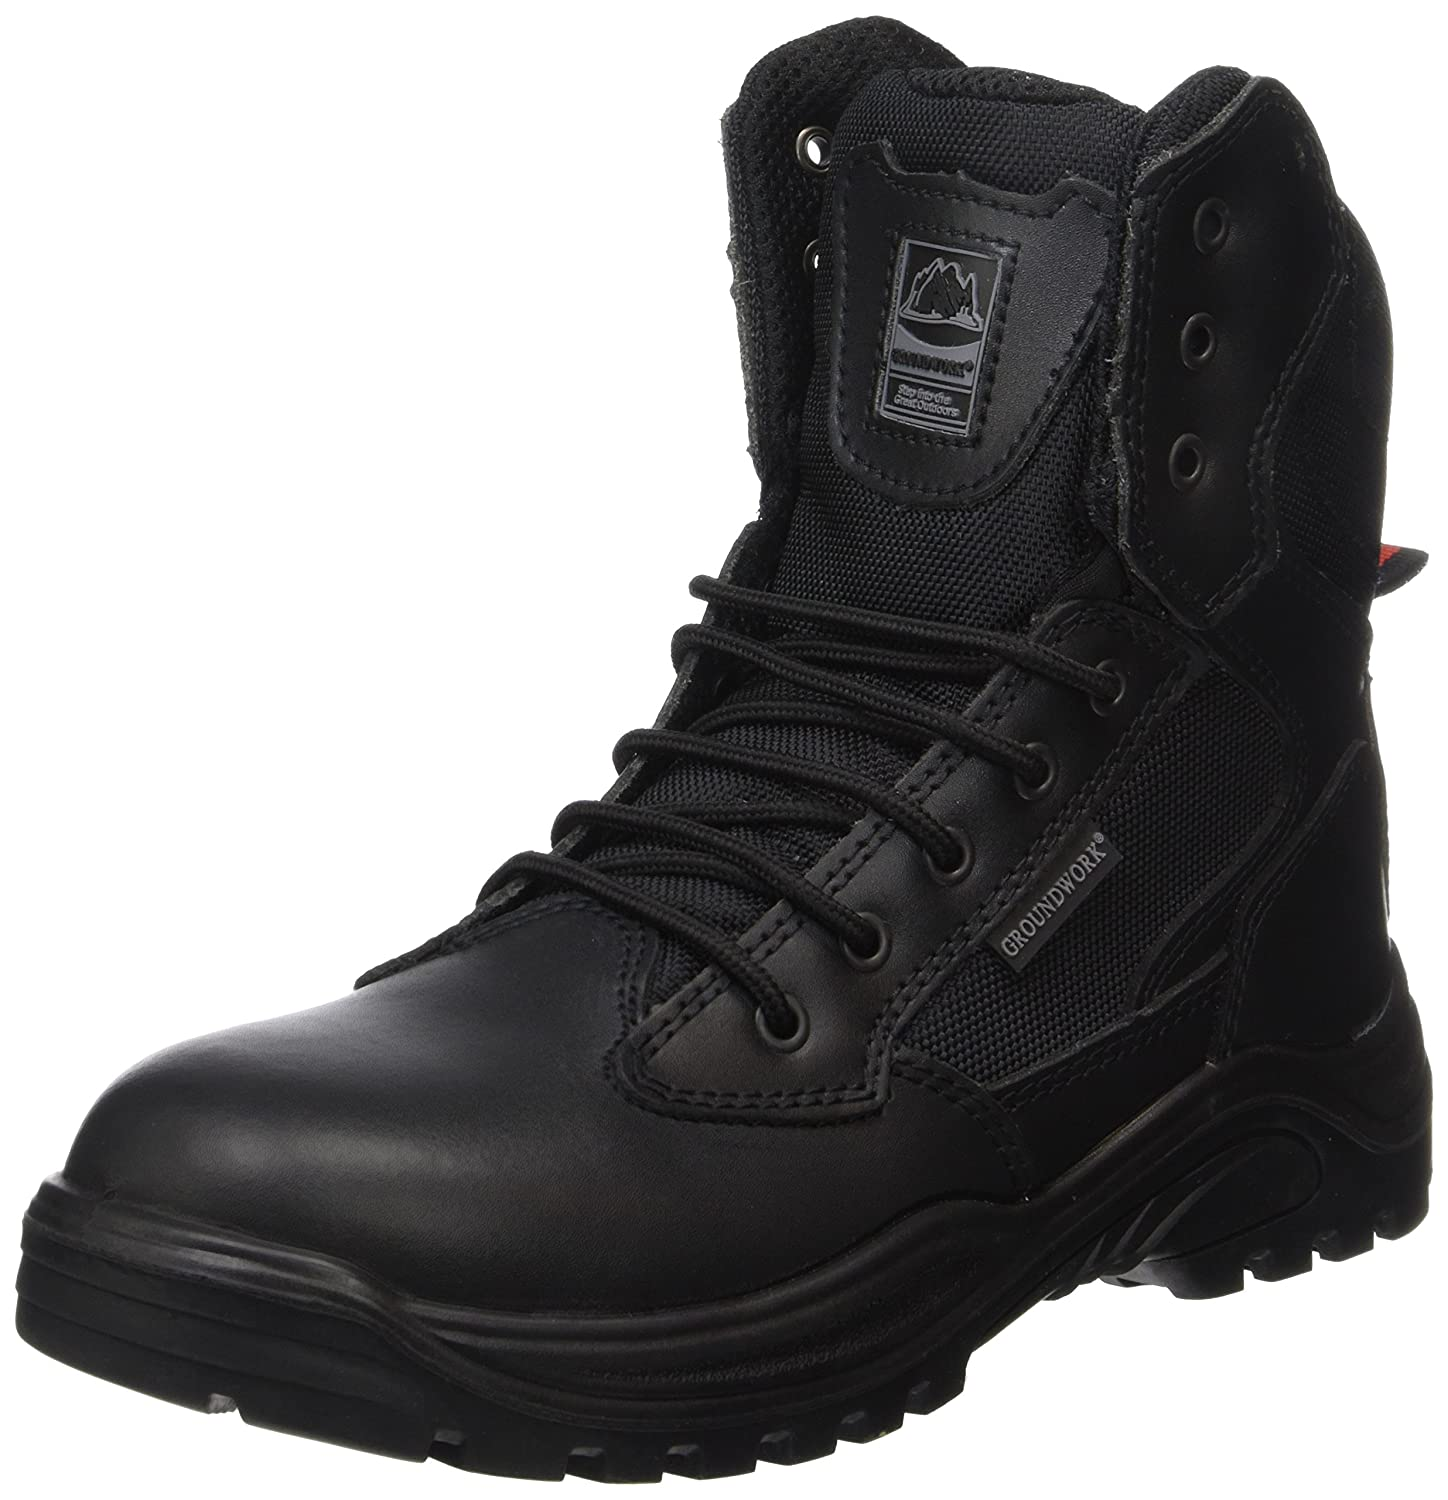 18feed9bd624 Steel Toe Cap Combat Tactical Safety Ankle Boots Security Military Police  Boot